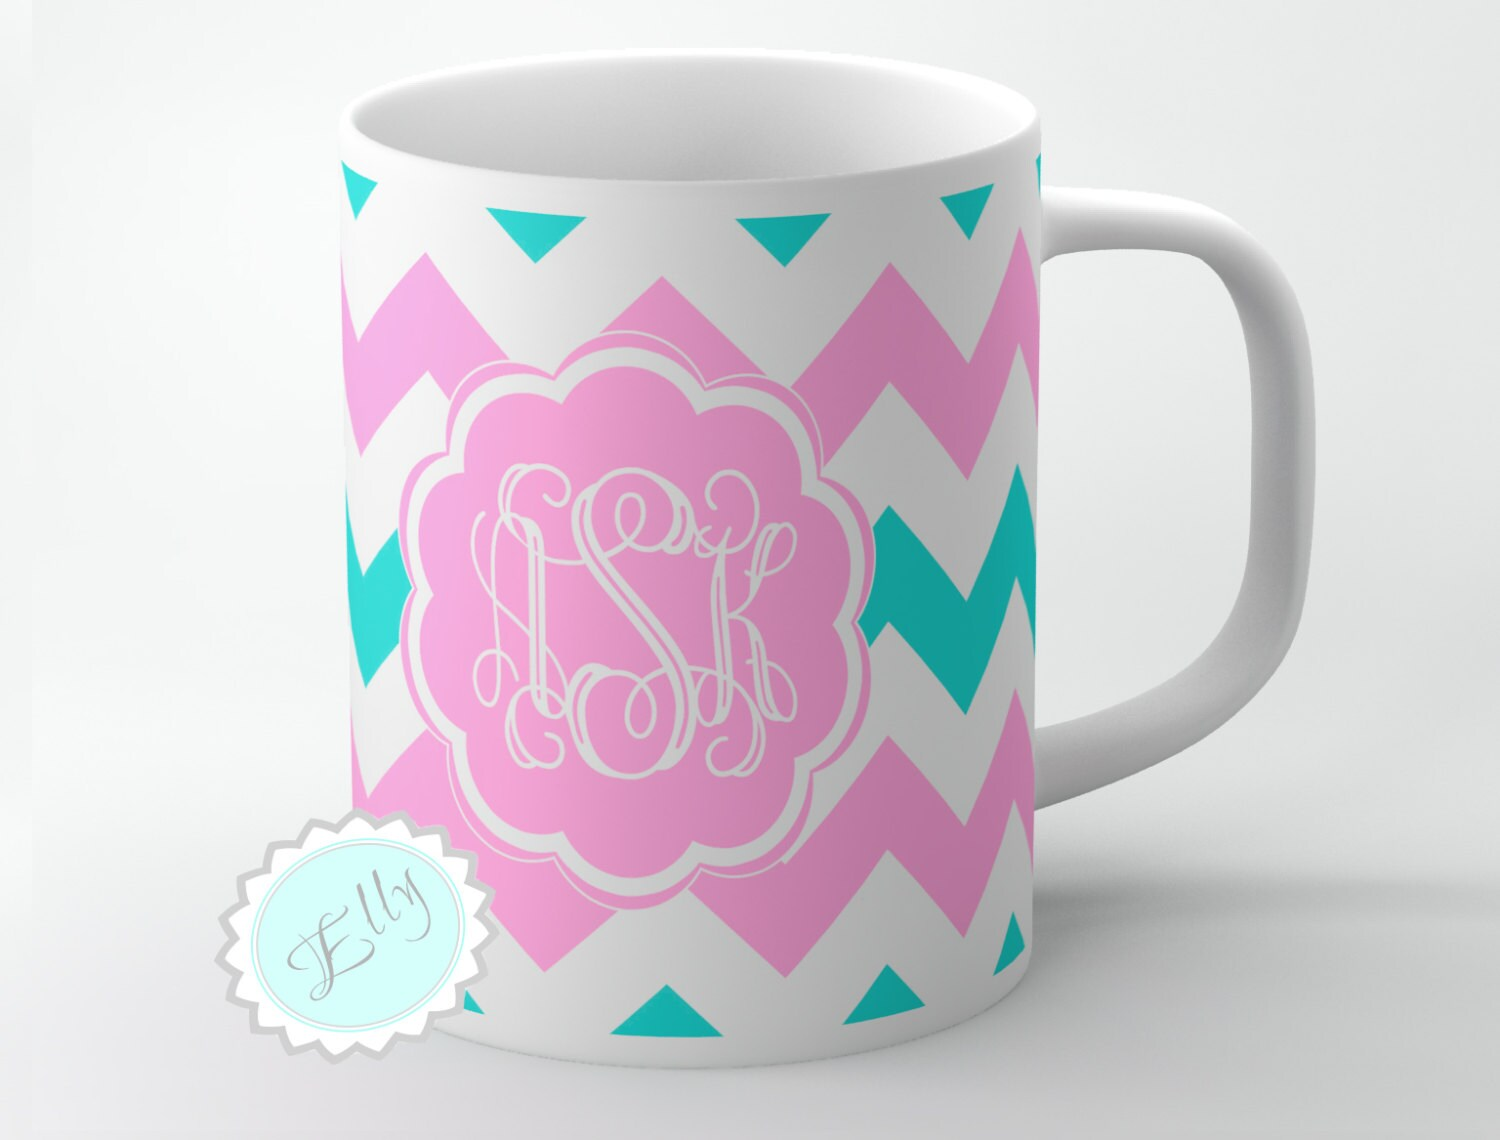 Girly Coffee Cup Cute Curly Pink Monogram On By Butterflyghost